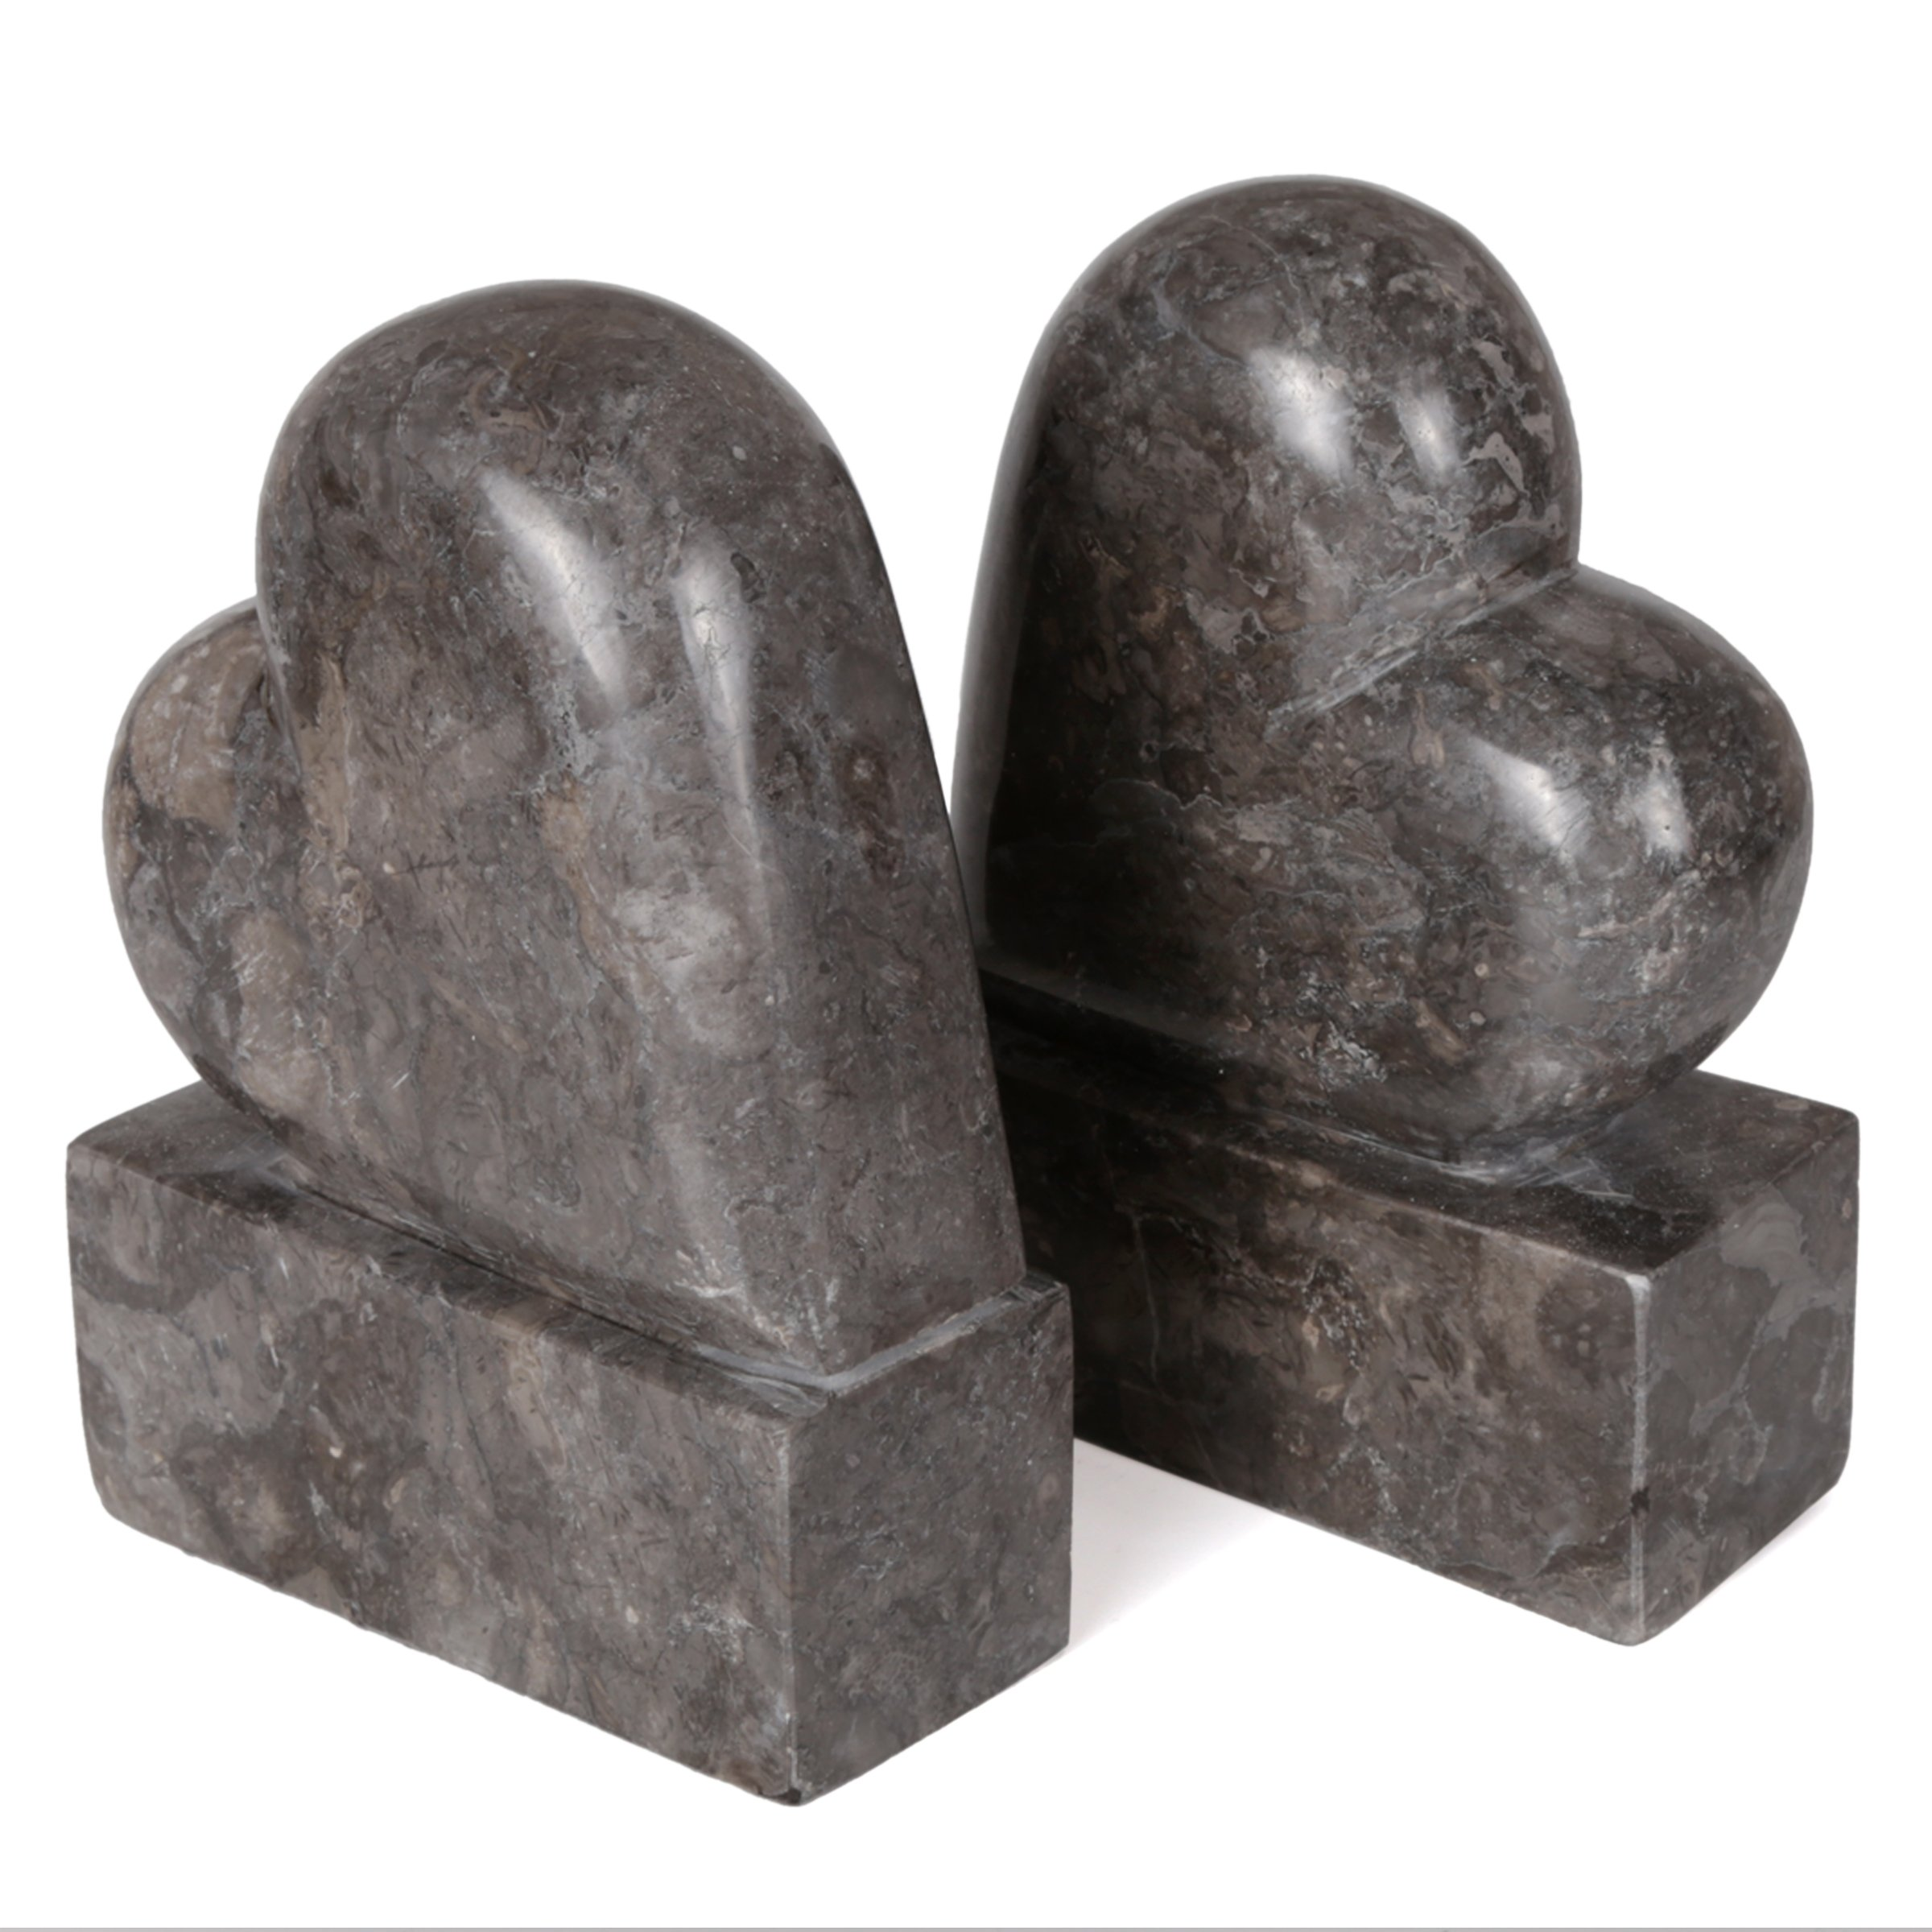 Creative Home 2 Piece Genuine Charcoal Marble Stone Heart Shapped Bookends Set by Creative Home